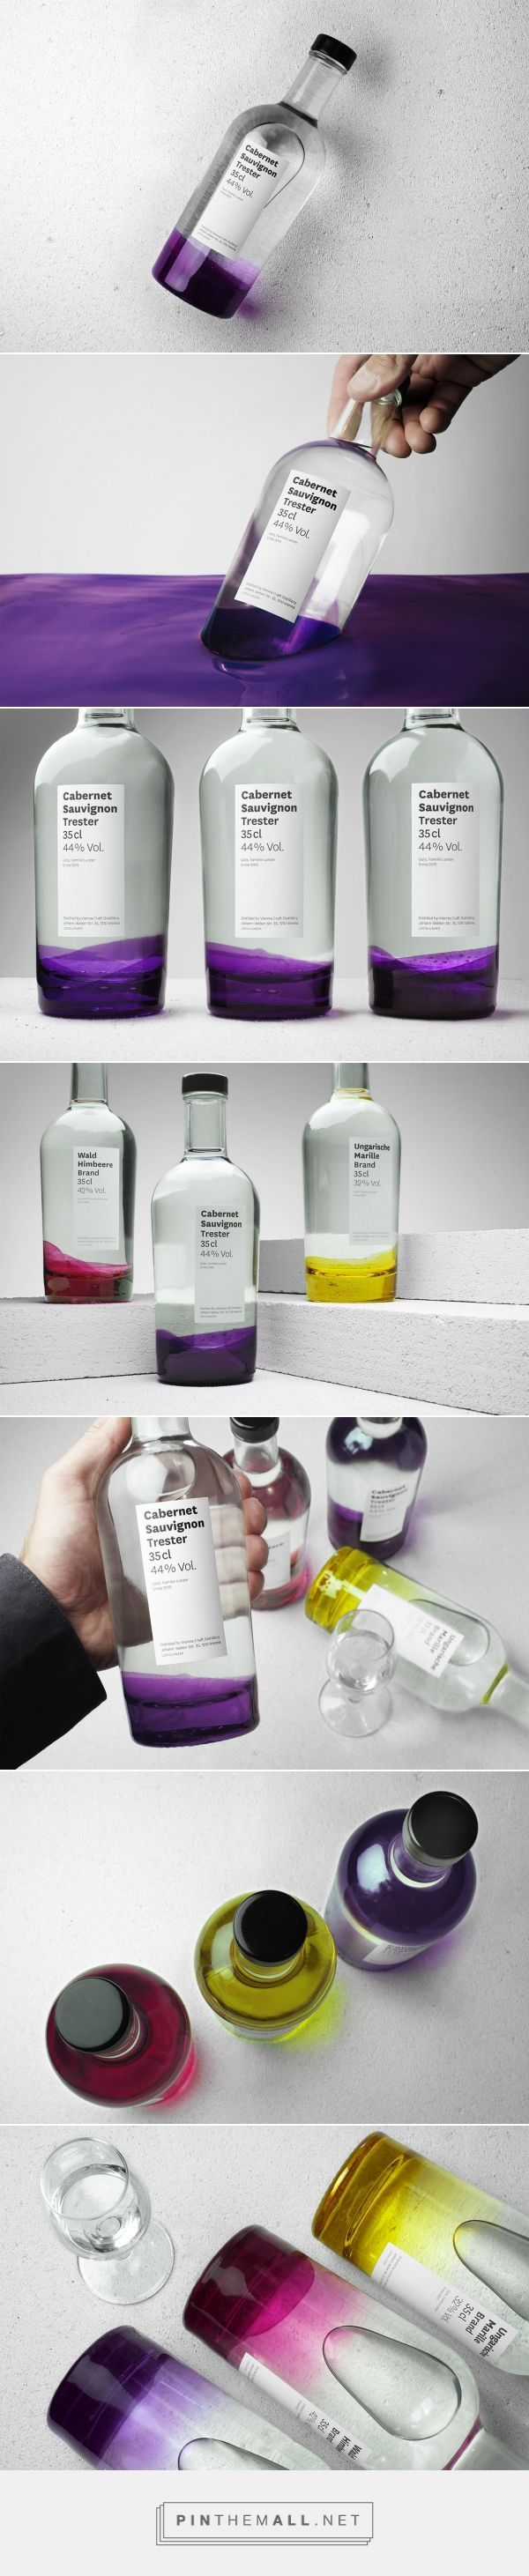 Edelbrand Series packaging design by Espacioblanco (Germany)